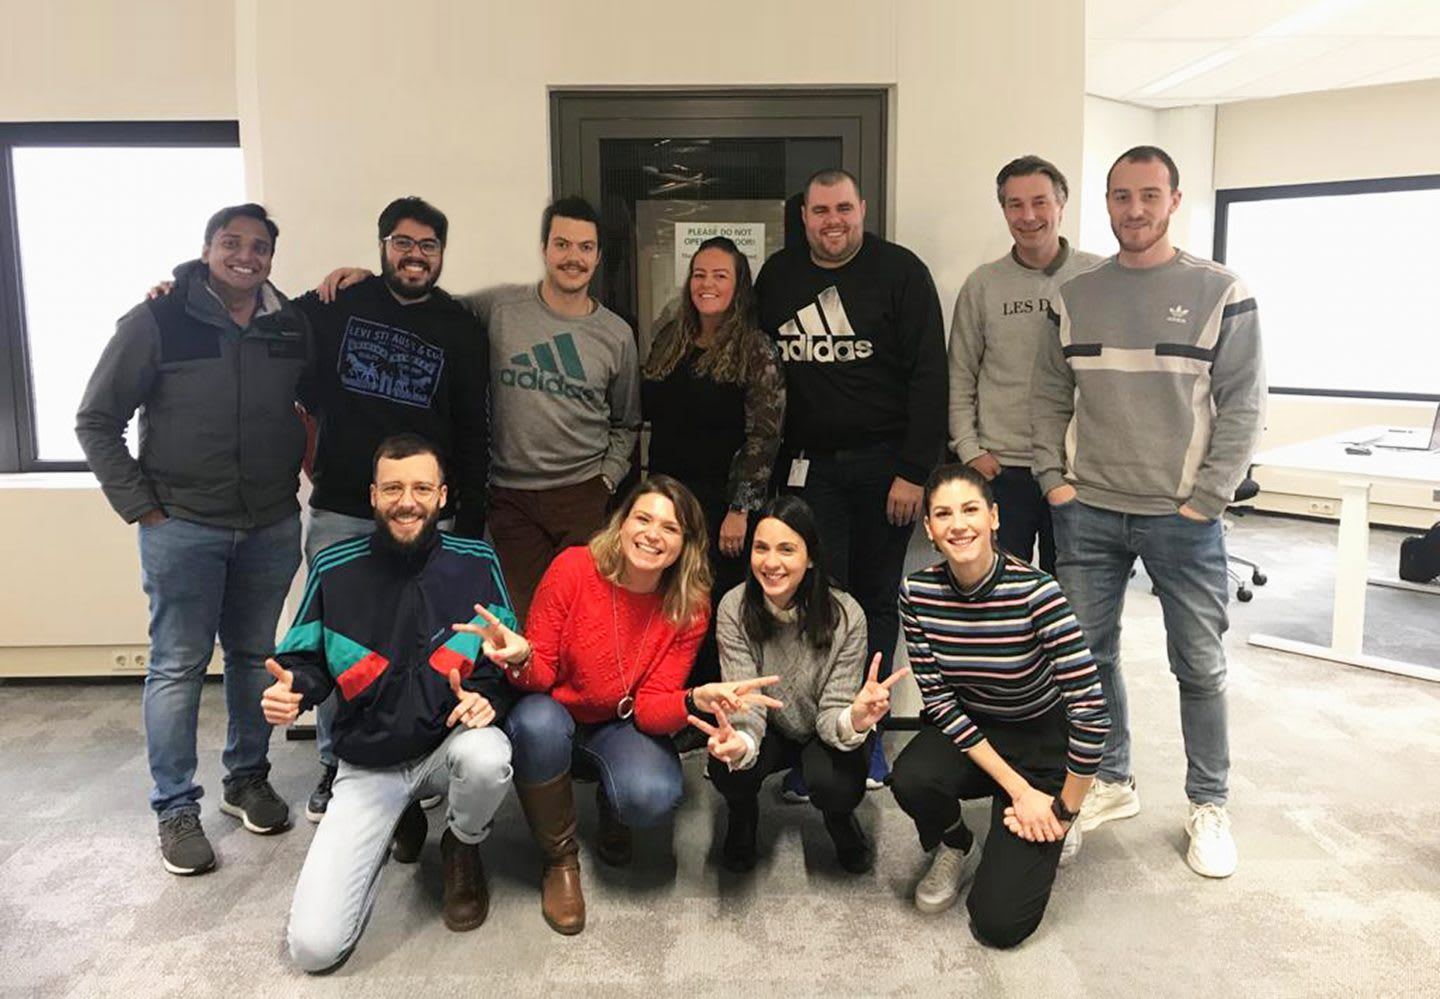 A group of young adidas employees posing for a group picture. team, networking, collaboration, confidence, GamePlan A.